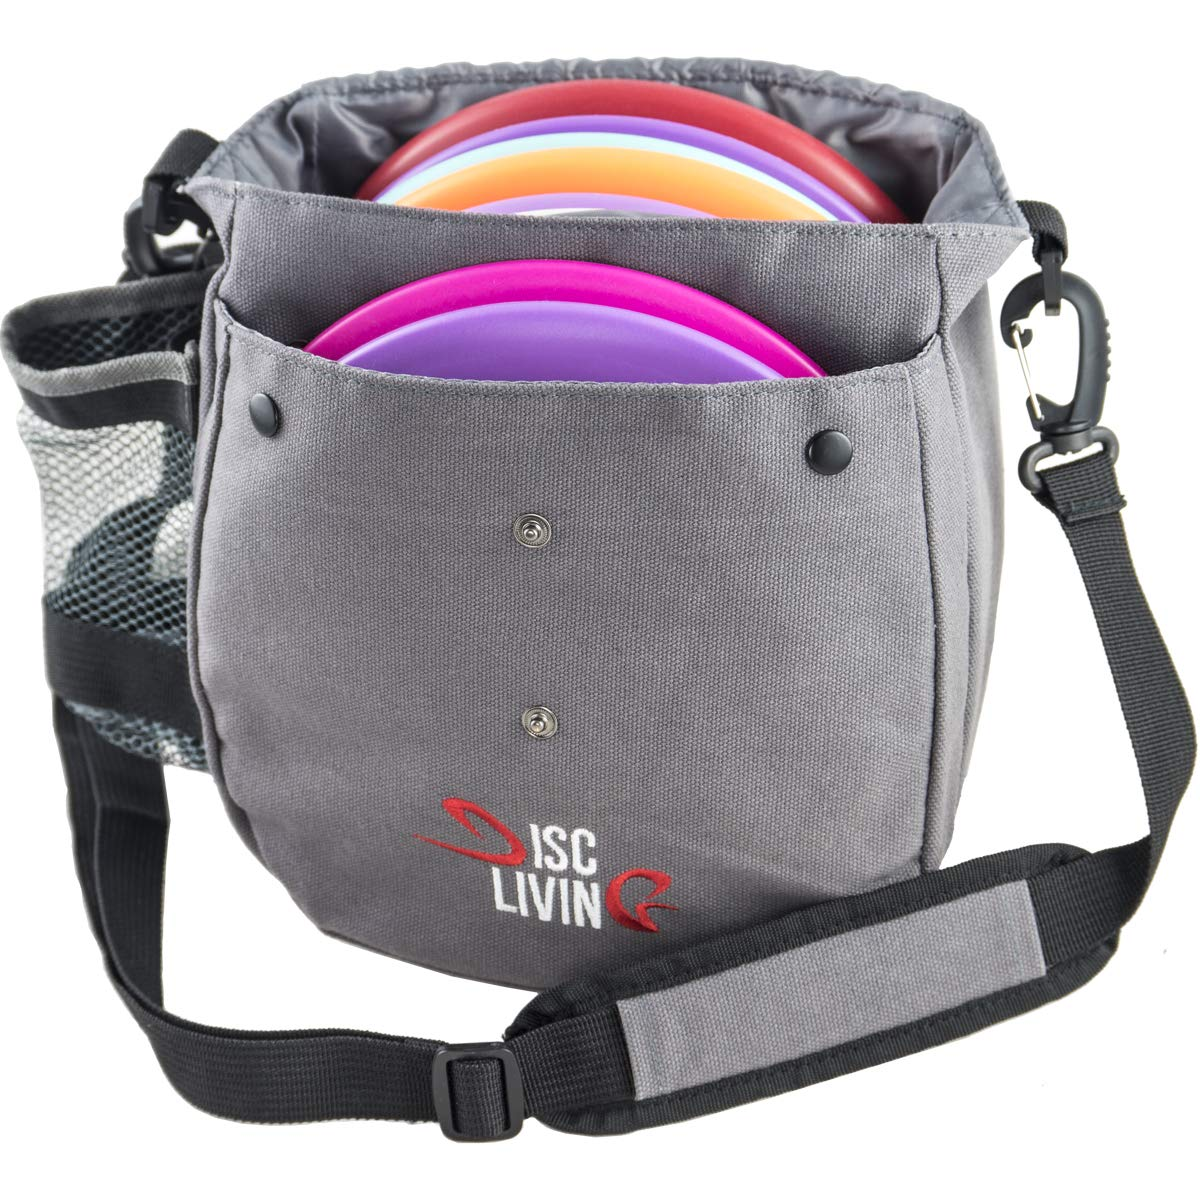 Disc Living Disc Golf Bag | Frisbee Golf Bag | Lightweight Fits Up to 10 Discs | Belt Loop | Adjustable Shoulder Strap Padding | Double Front Button Design | Bottle Holder | Durable Canvas (Grey) by Disc Living